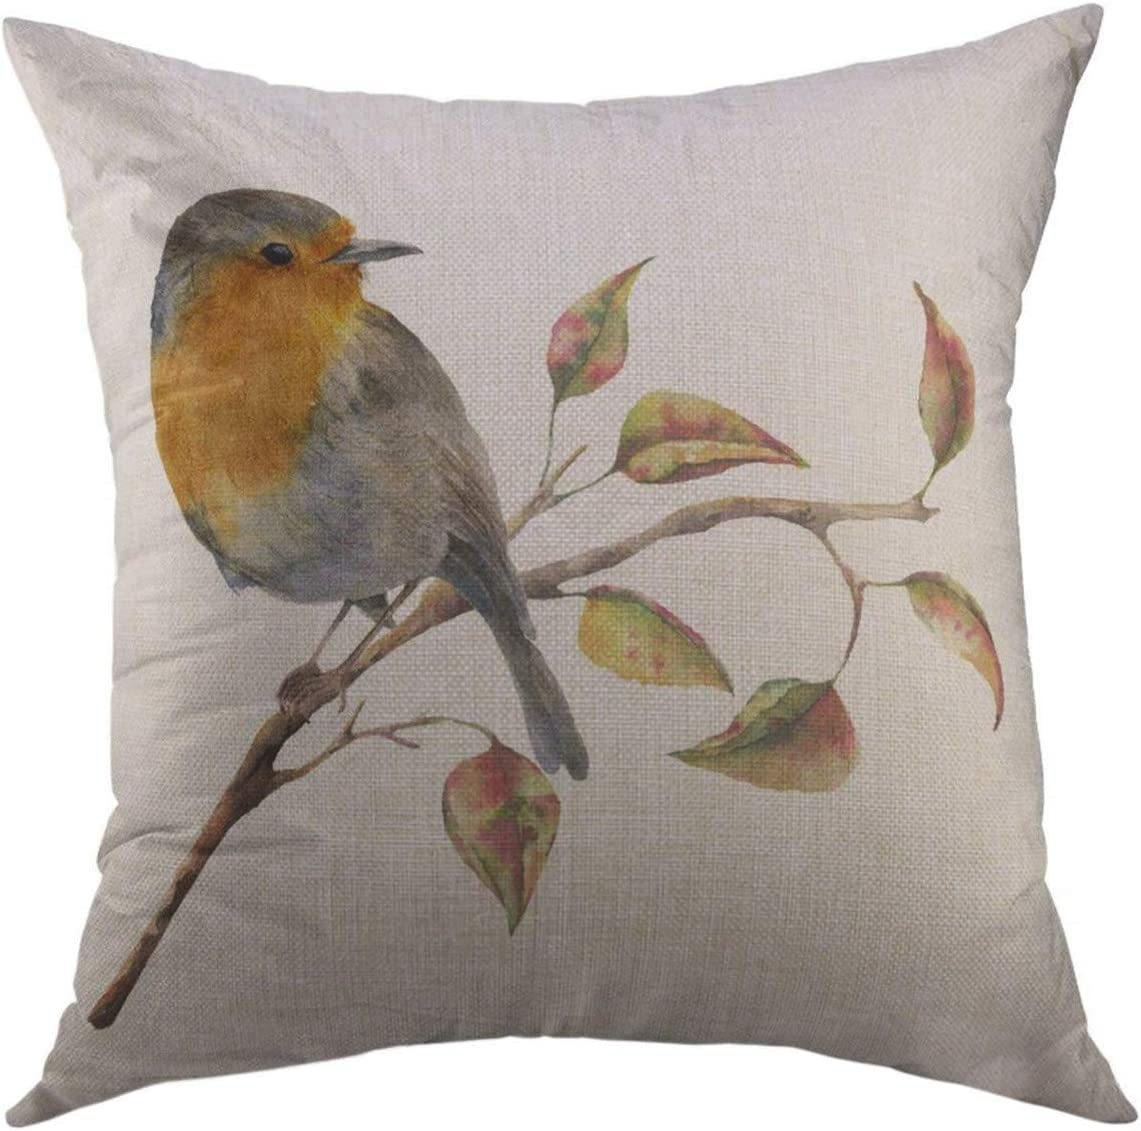 Mugod Throw Pillow Cover Watercolor Robin Sitting on Tree Branch Red Yellow Leaves Autumn Bird Fall White Nature Home Decor Pillow case 18x18 Inch